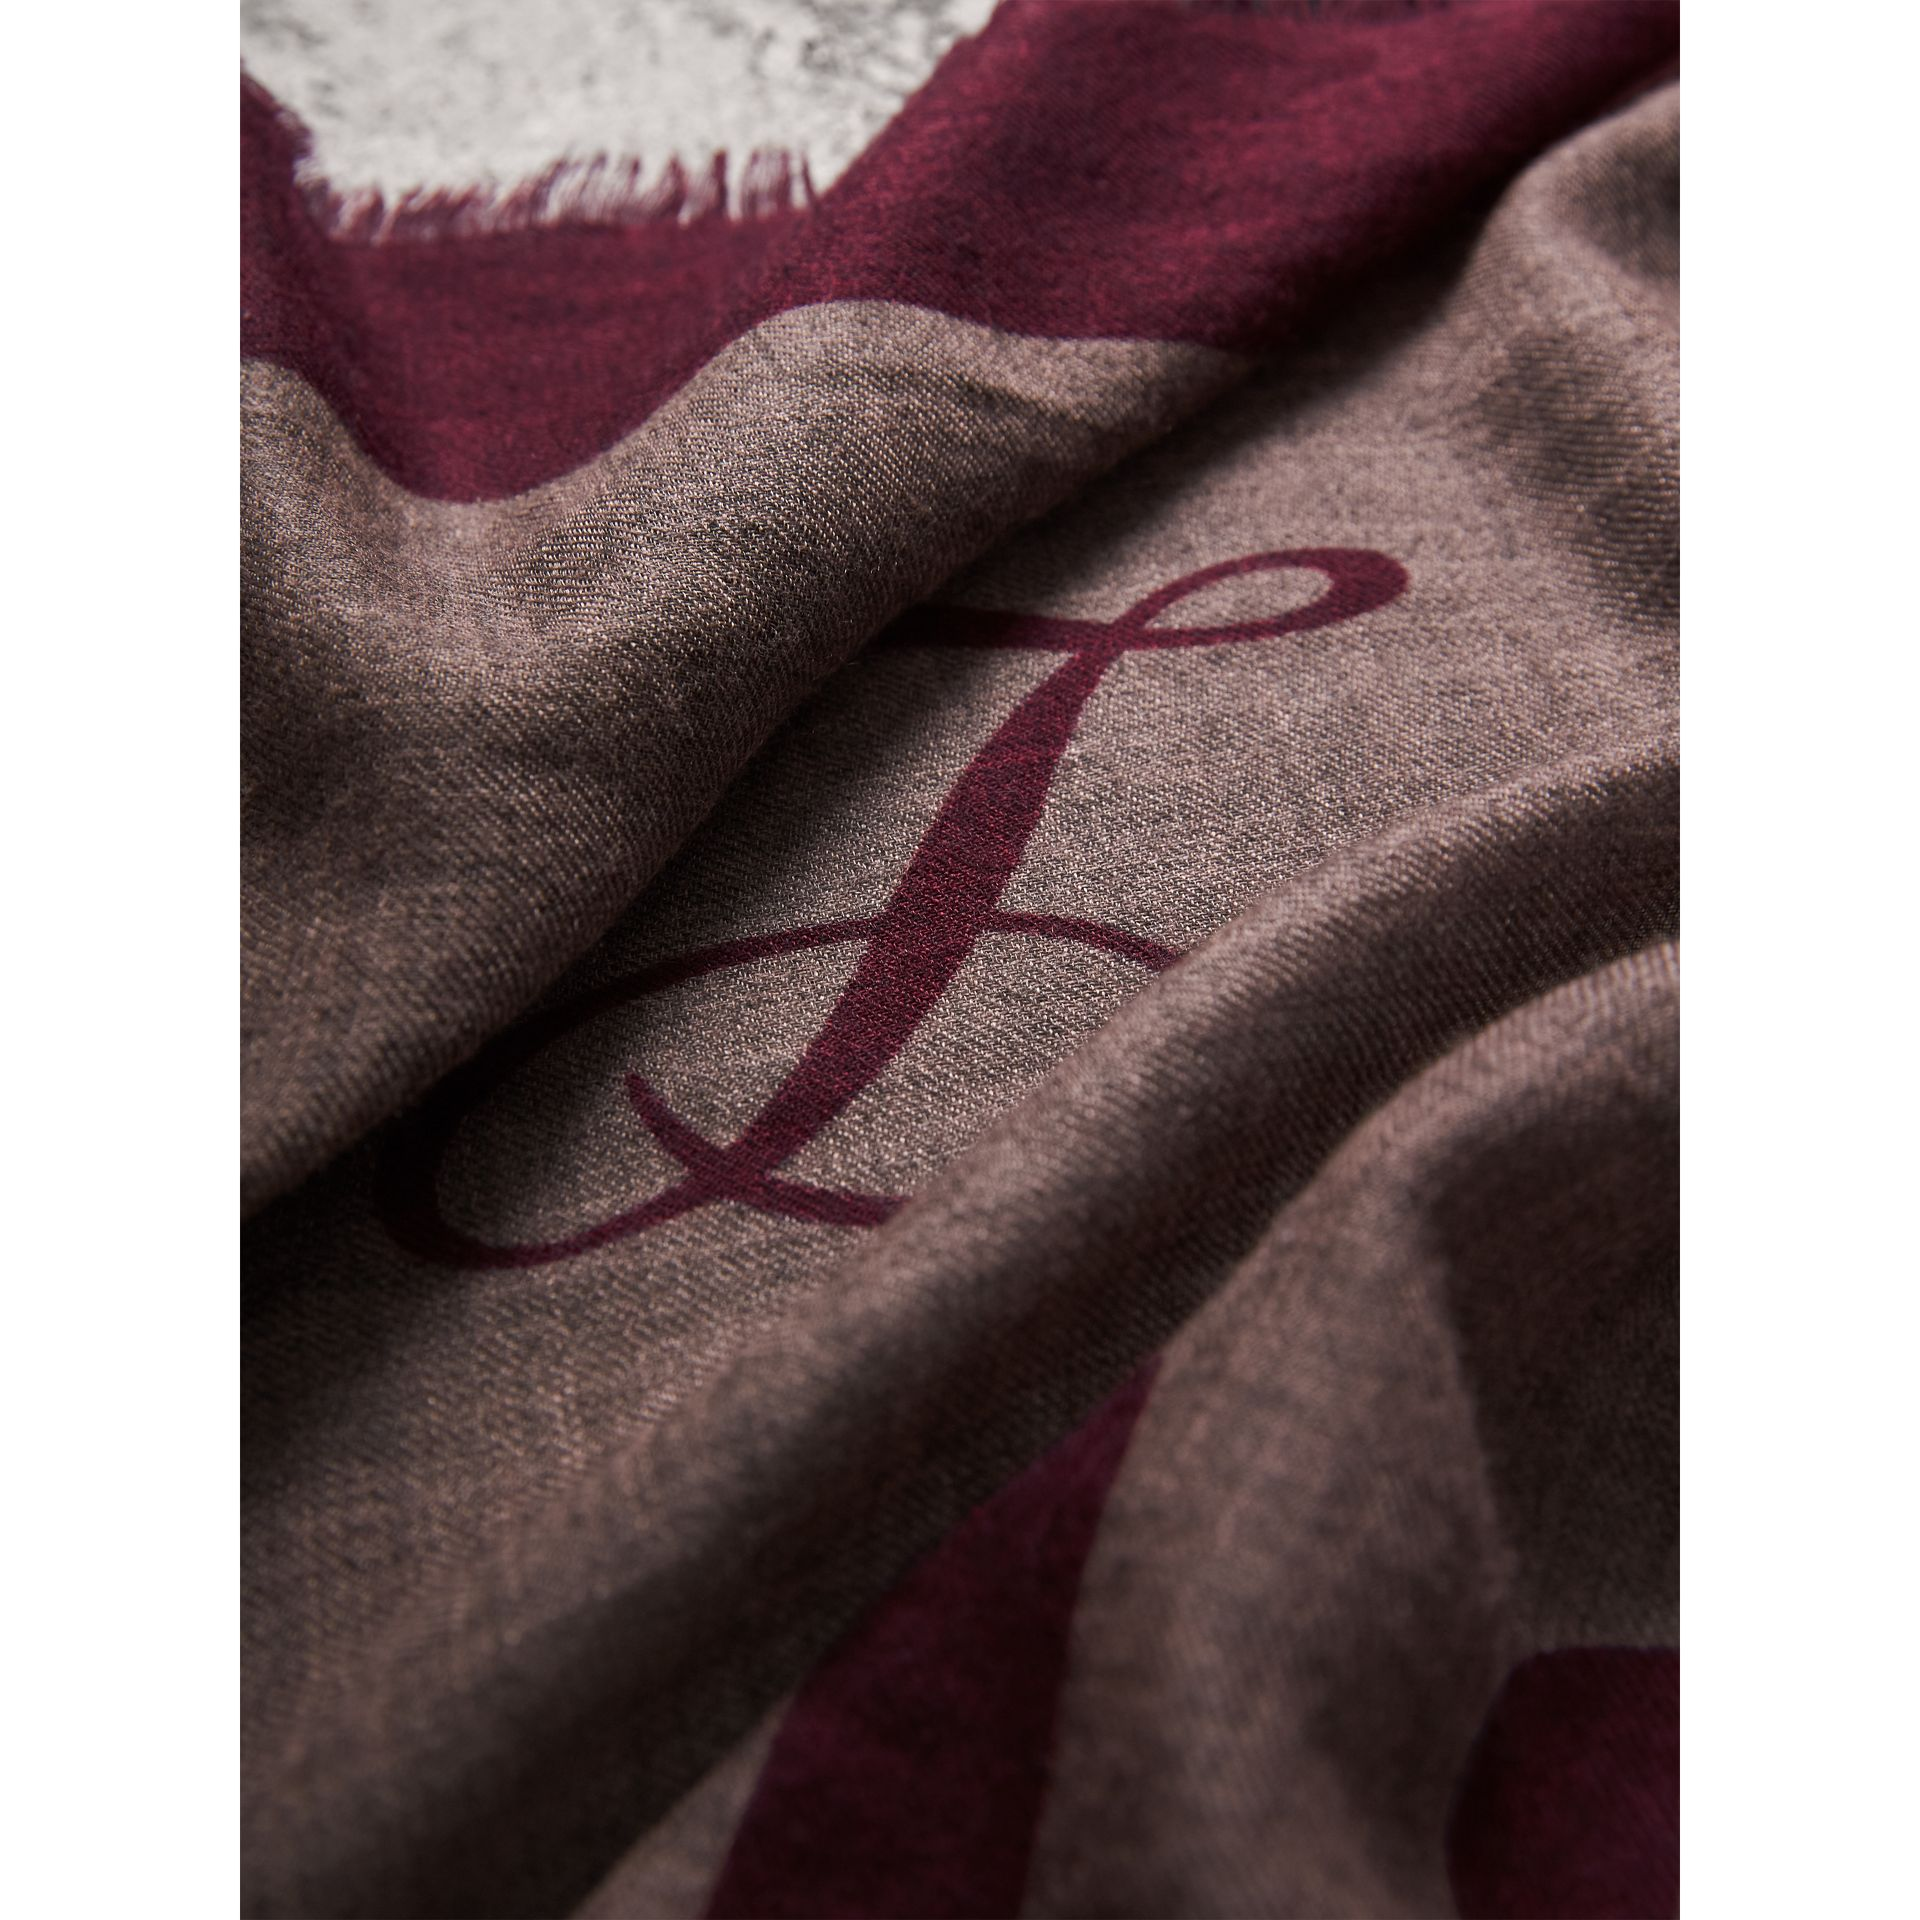 Graphic Print Motif  Lightweight Cashmere Scarf in Ash Rose - Women | Burberry - gallery image 1